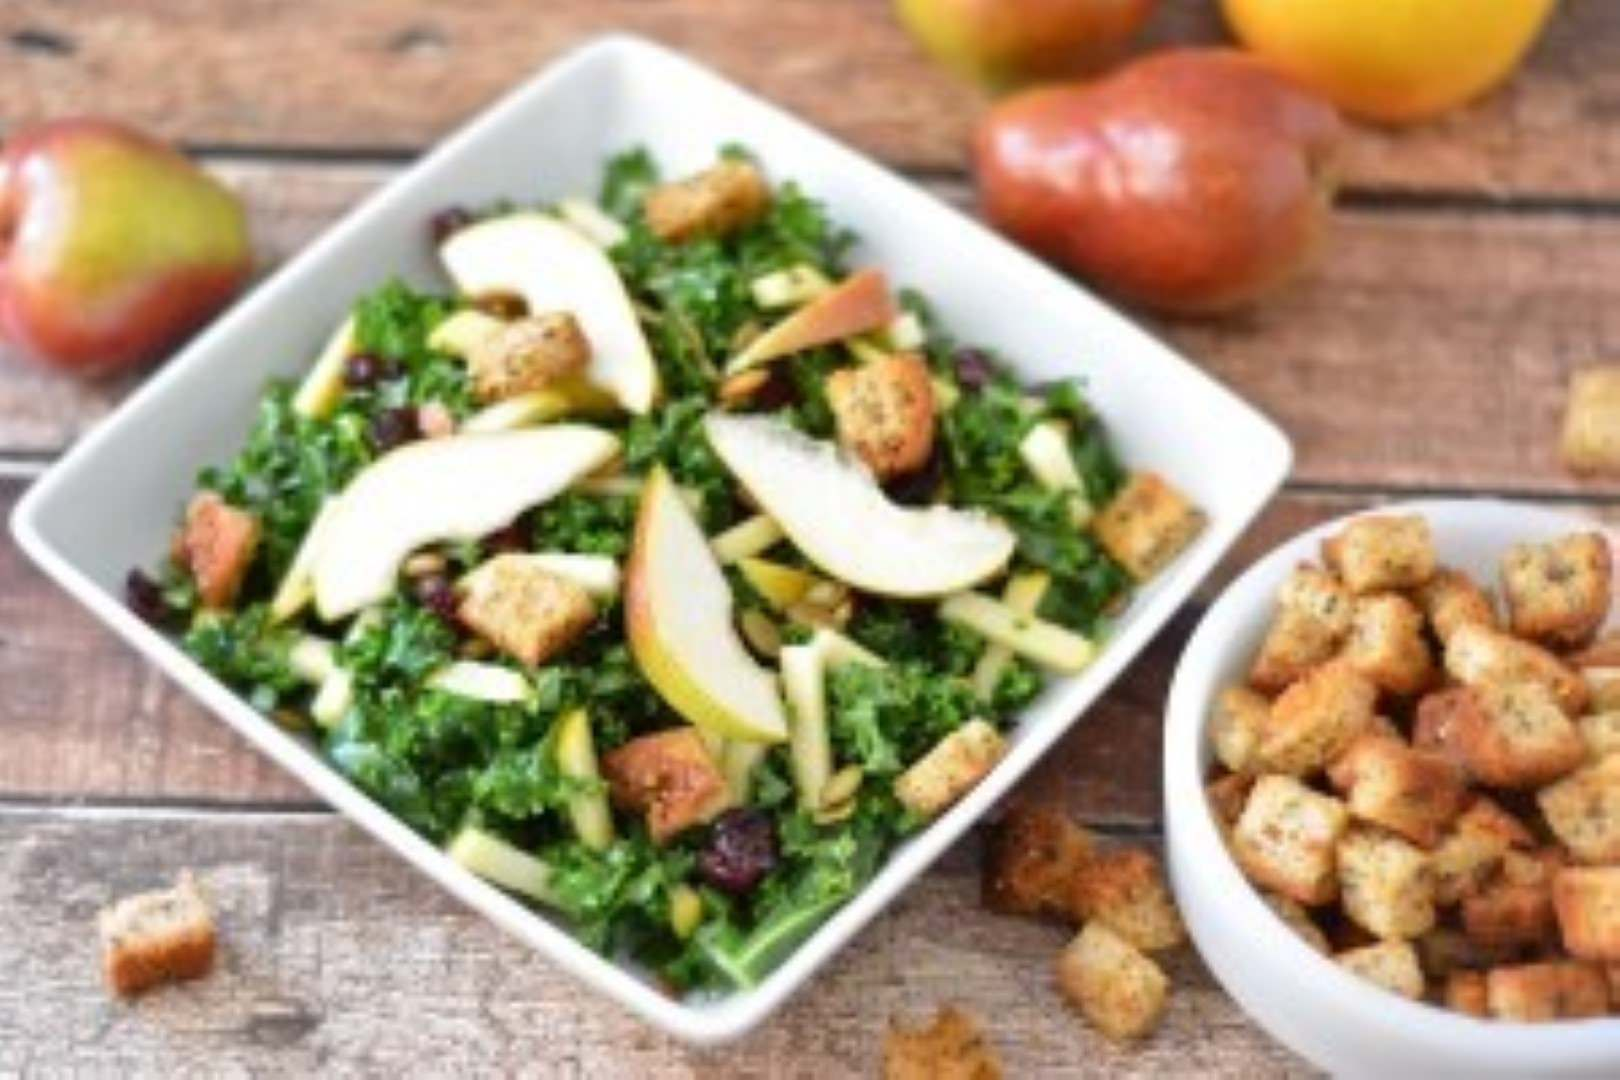 Three Bakers Homemade Croutons & Kale Salad 1